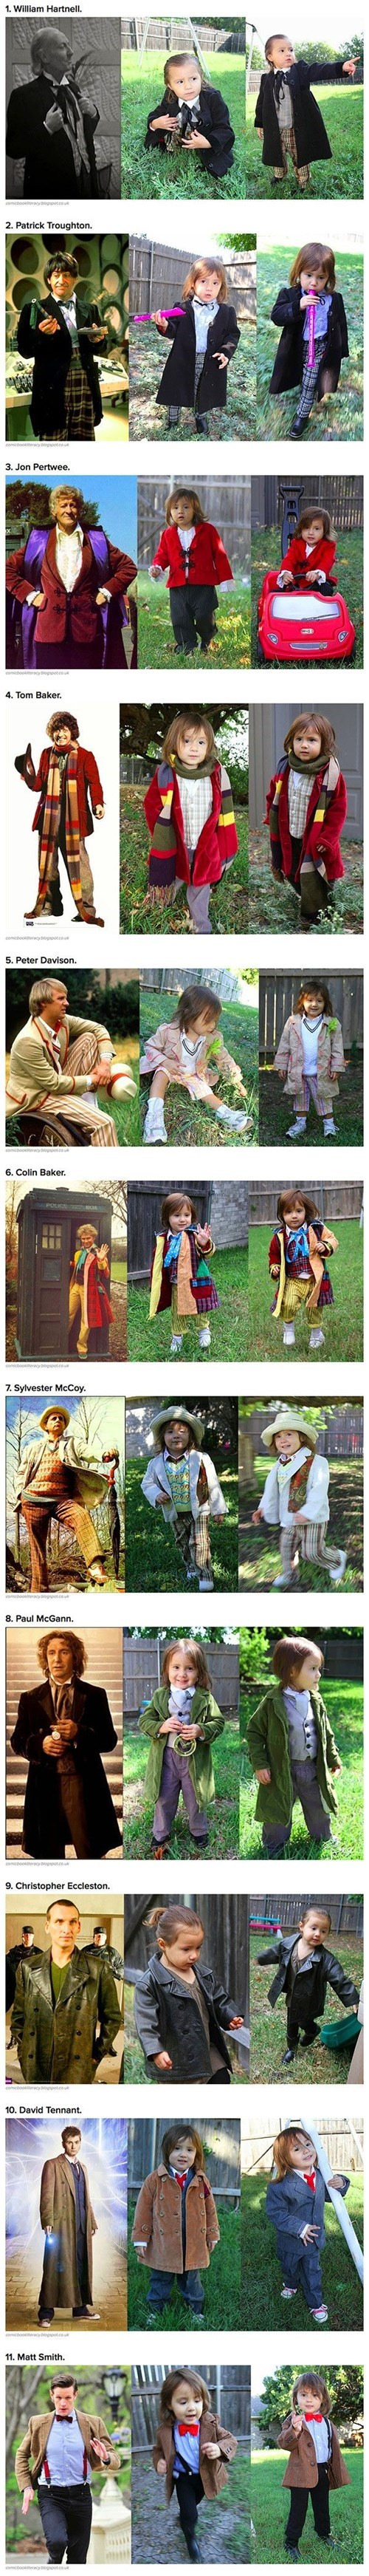 cosplay kids the doctor Whovian - 8394899456